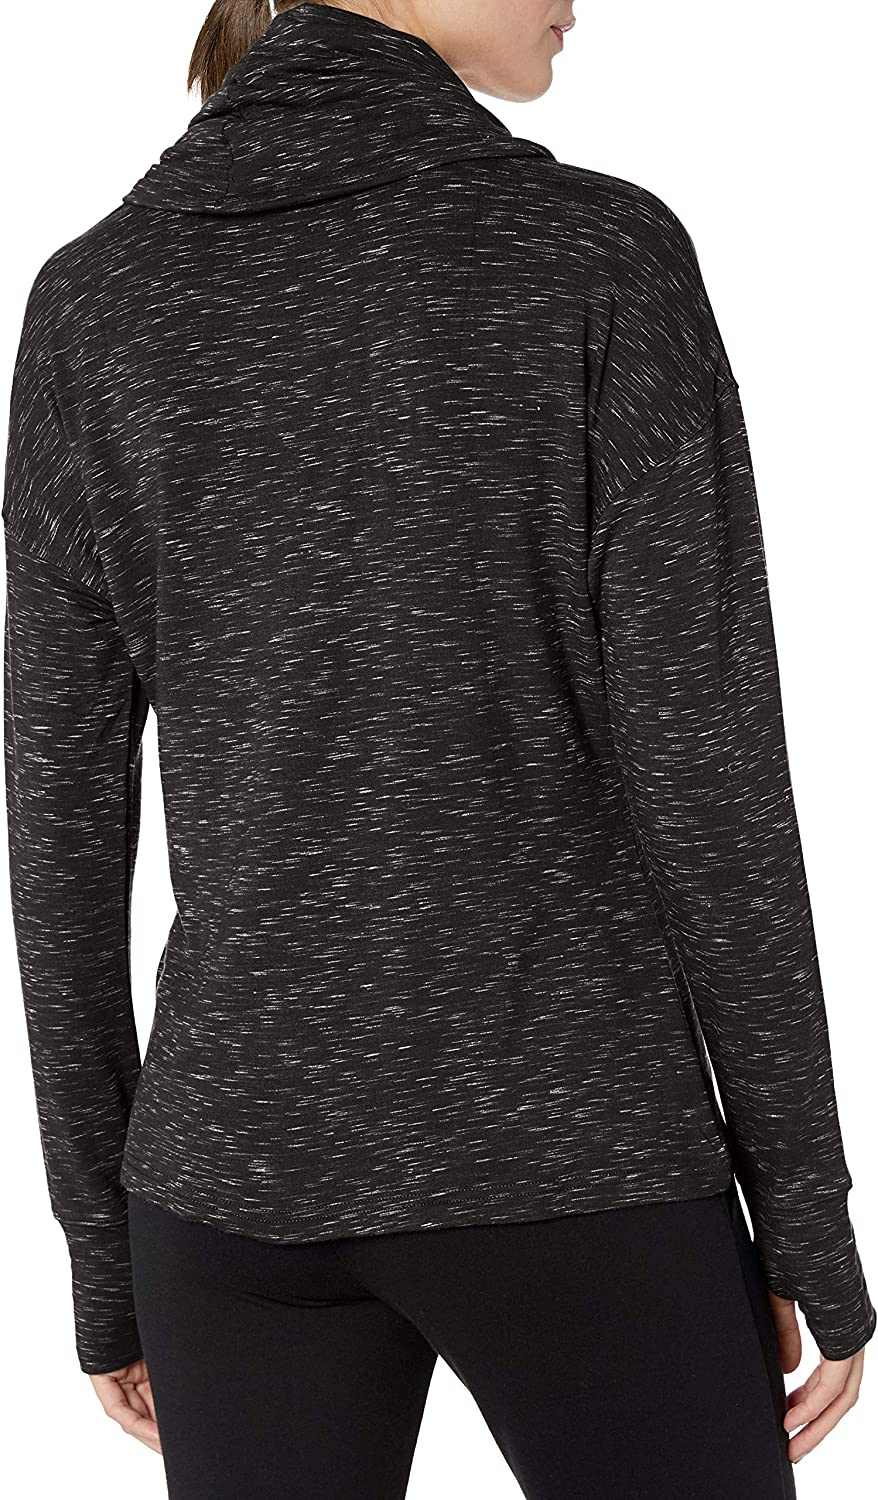 Danskin Womens Space Dye French Terry Pullover